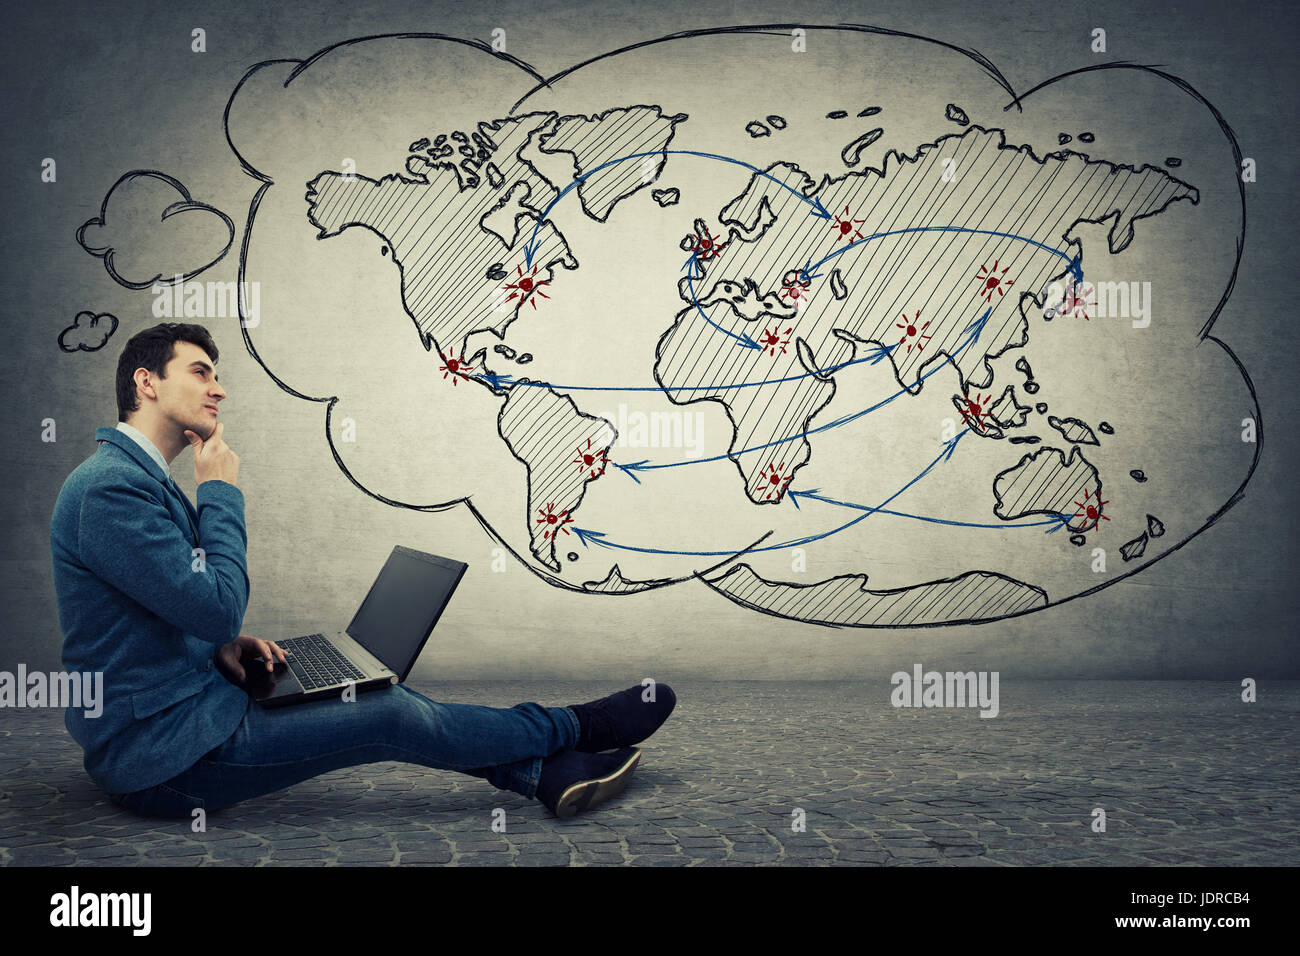 Young serious businessman sitting down on floor using laptop, thinking about global network and globalization concept. - Stock Image